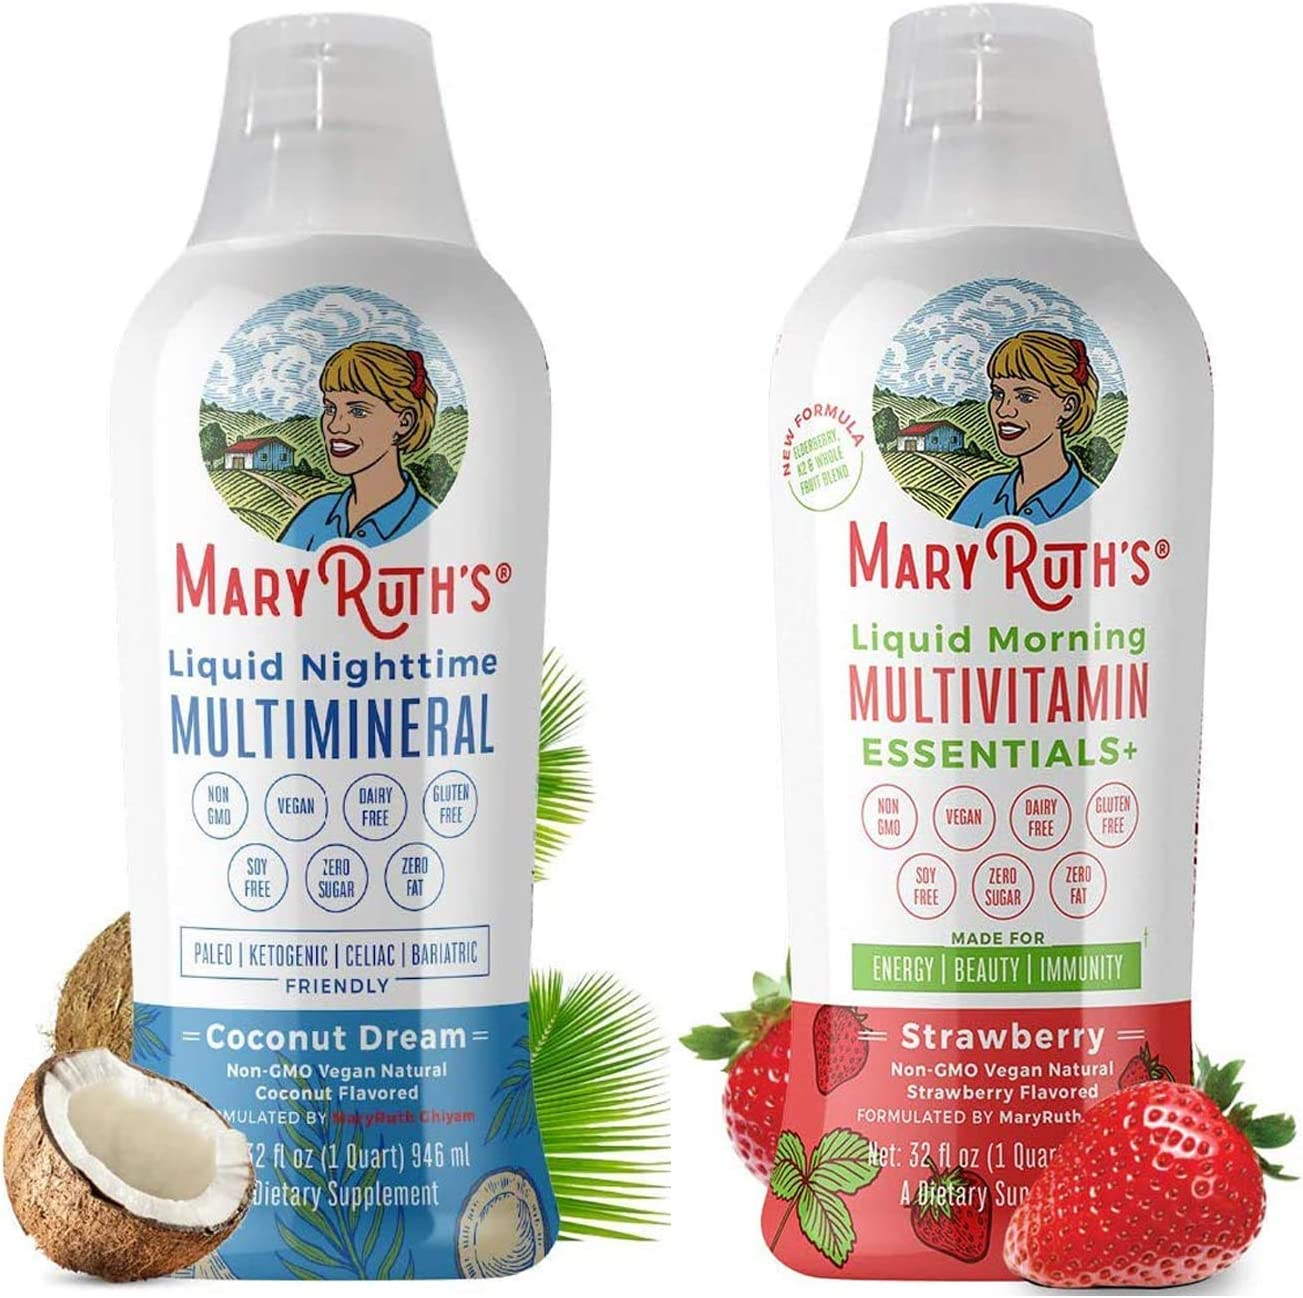 Liquid Sleep Multimineral & Morning Liquid Multivitamin Bundle by MaryRuth's | Liquid Sleep Multimineral (Coconut), 32oz | Morning Liquid Multivitamin (Strawberry), 32oz | Vegan, Non-GMO, Gluten Free